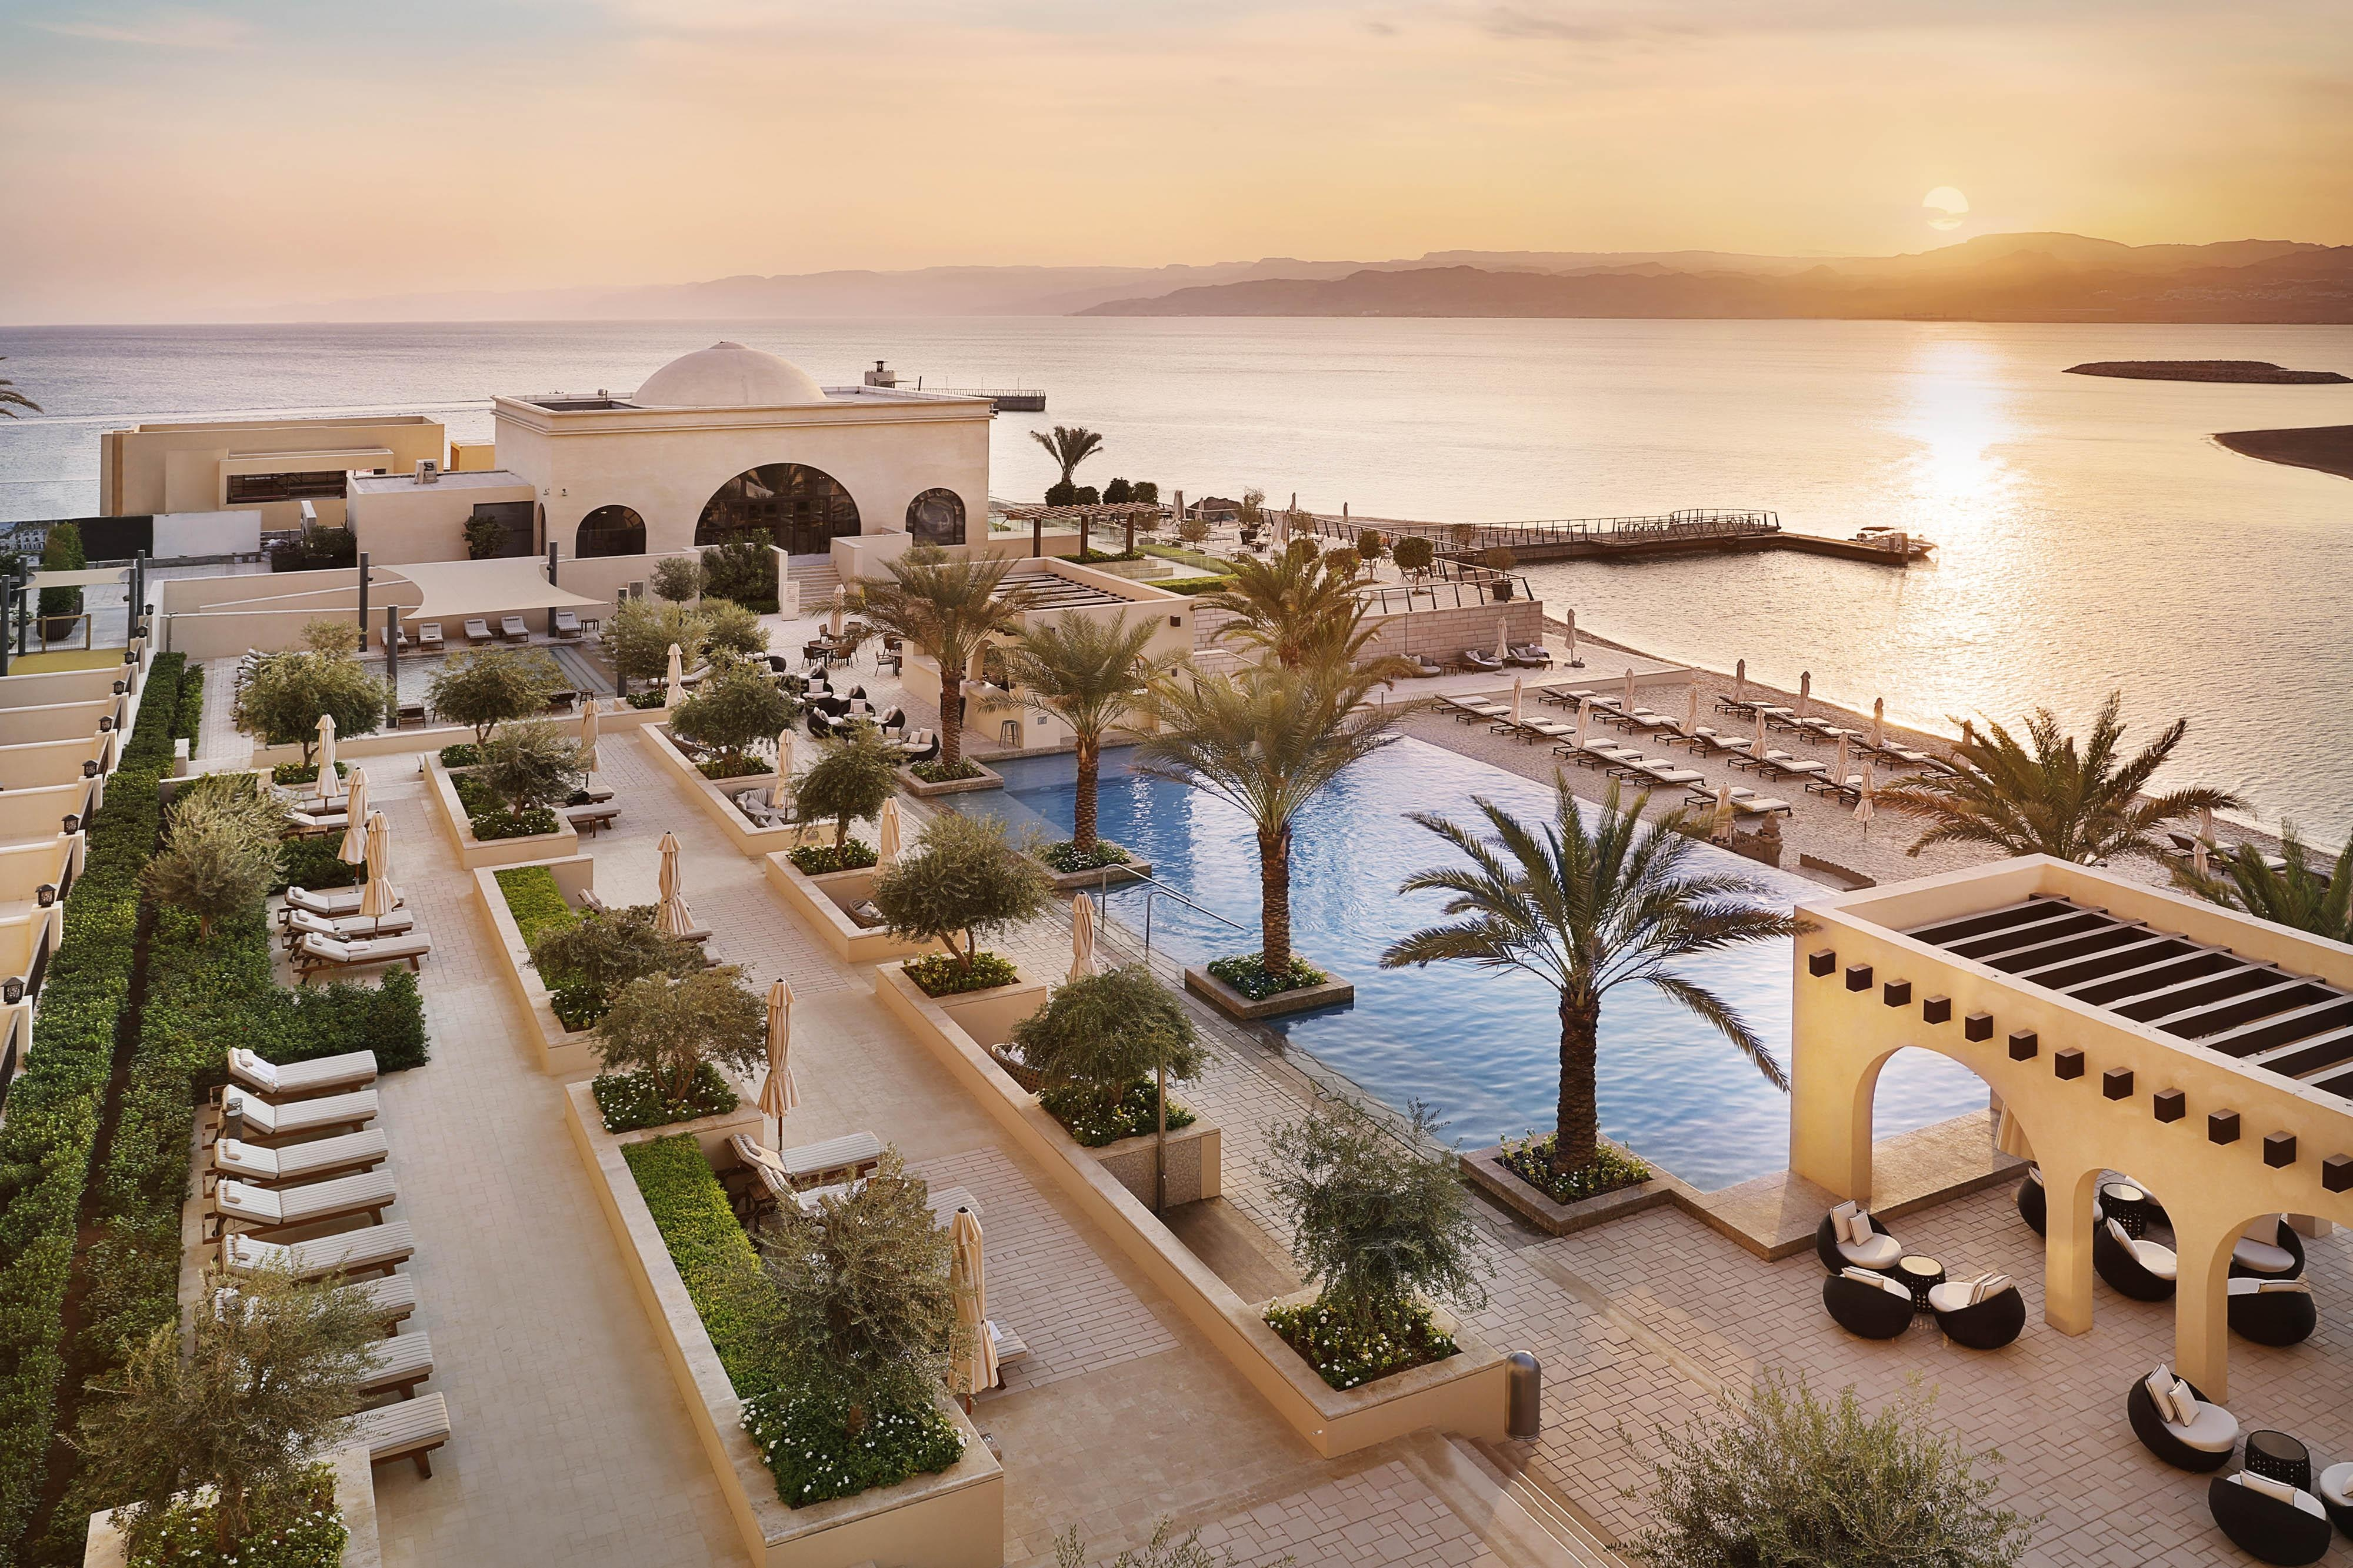 There is no better place to enjoy the Aqaba sunshine than by our pool or beach.